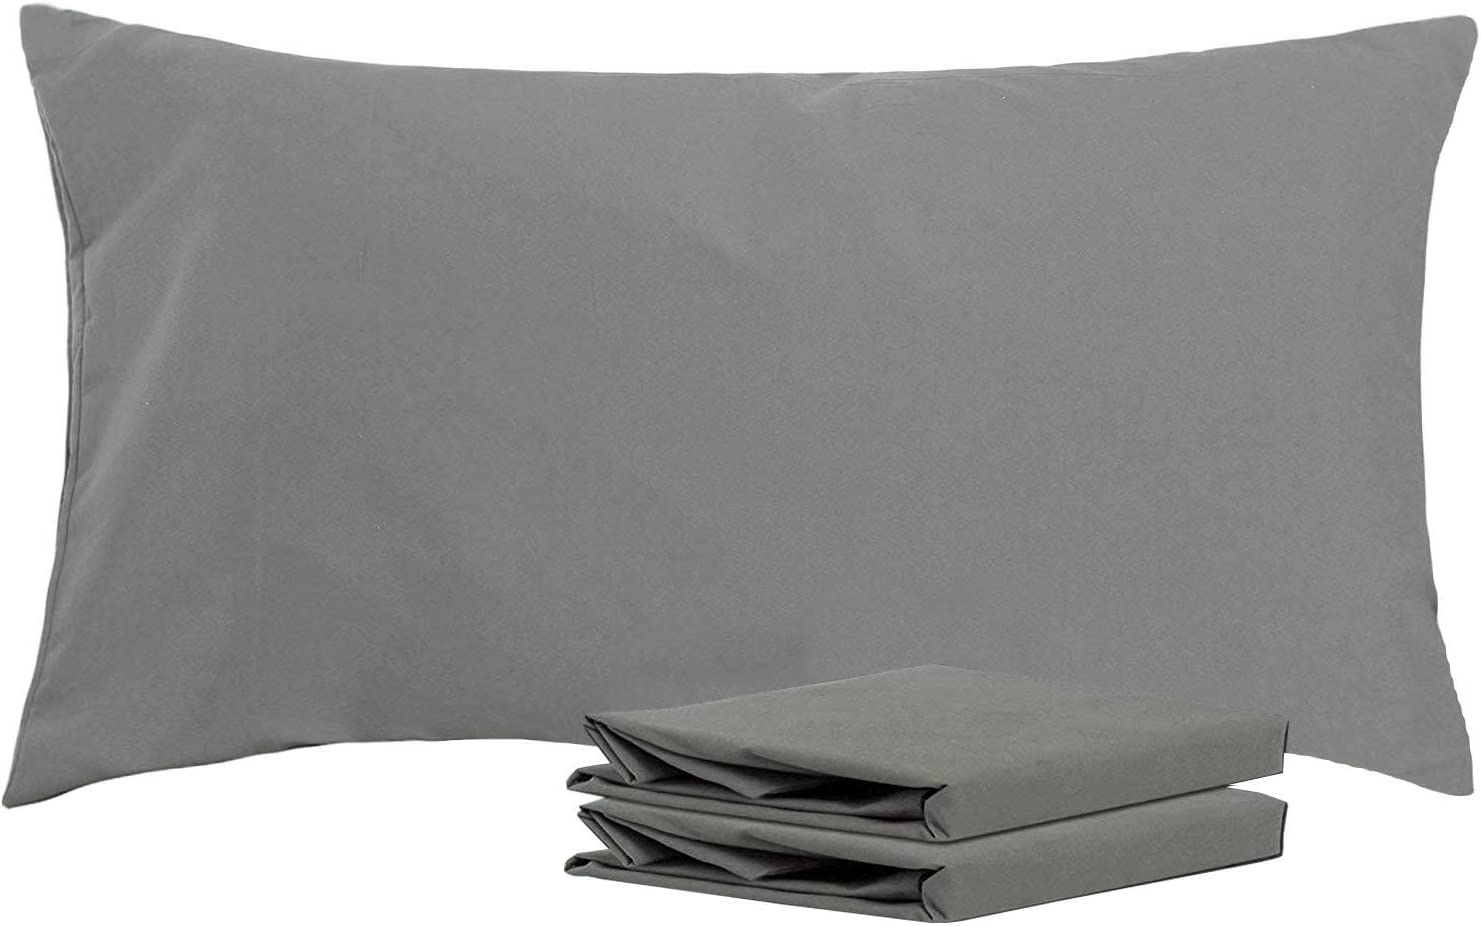 NTBAY King Pillowcases, Set of 2, 100% Brushed Microfiber, Soft and Cozy, Wrinkle, Fade, Stain Resistant,with Envelope Closure, Dark Grey